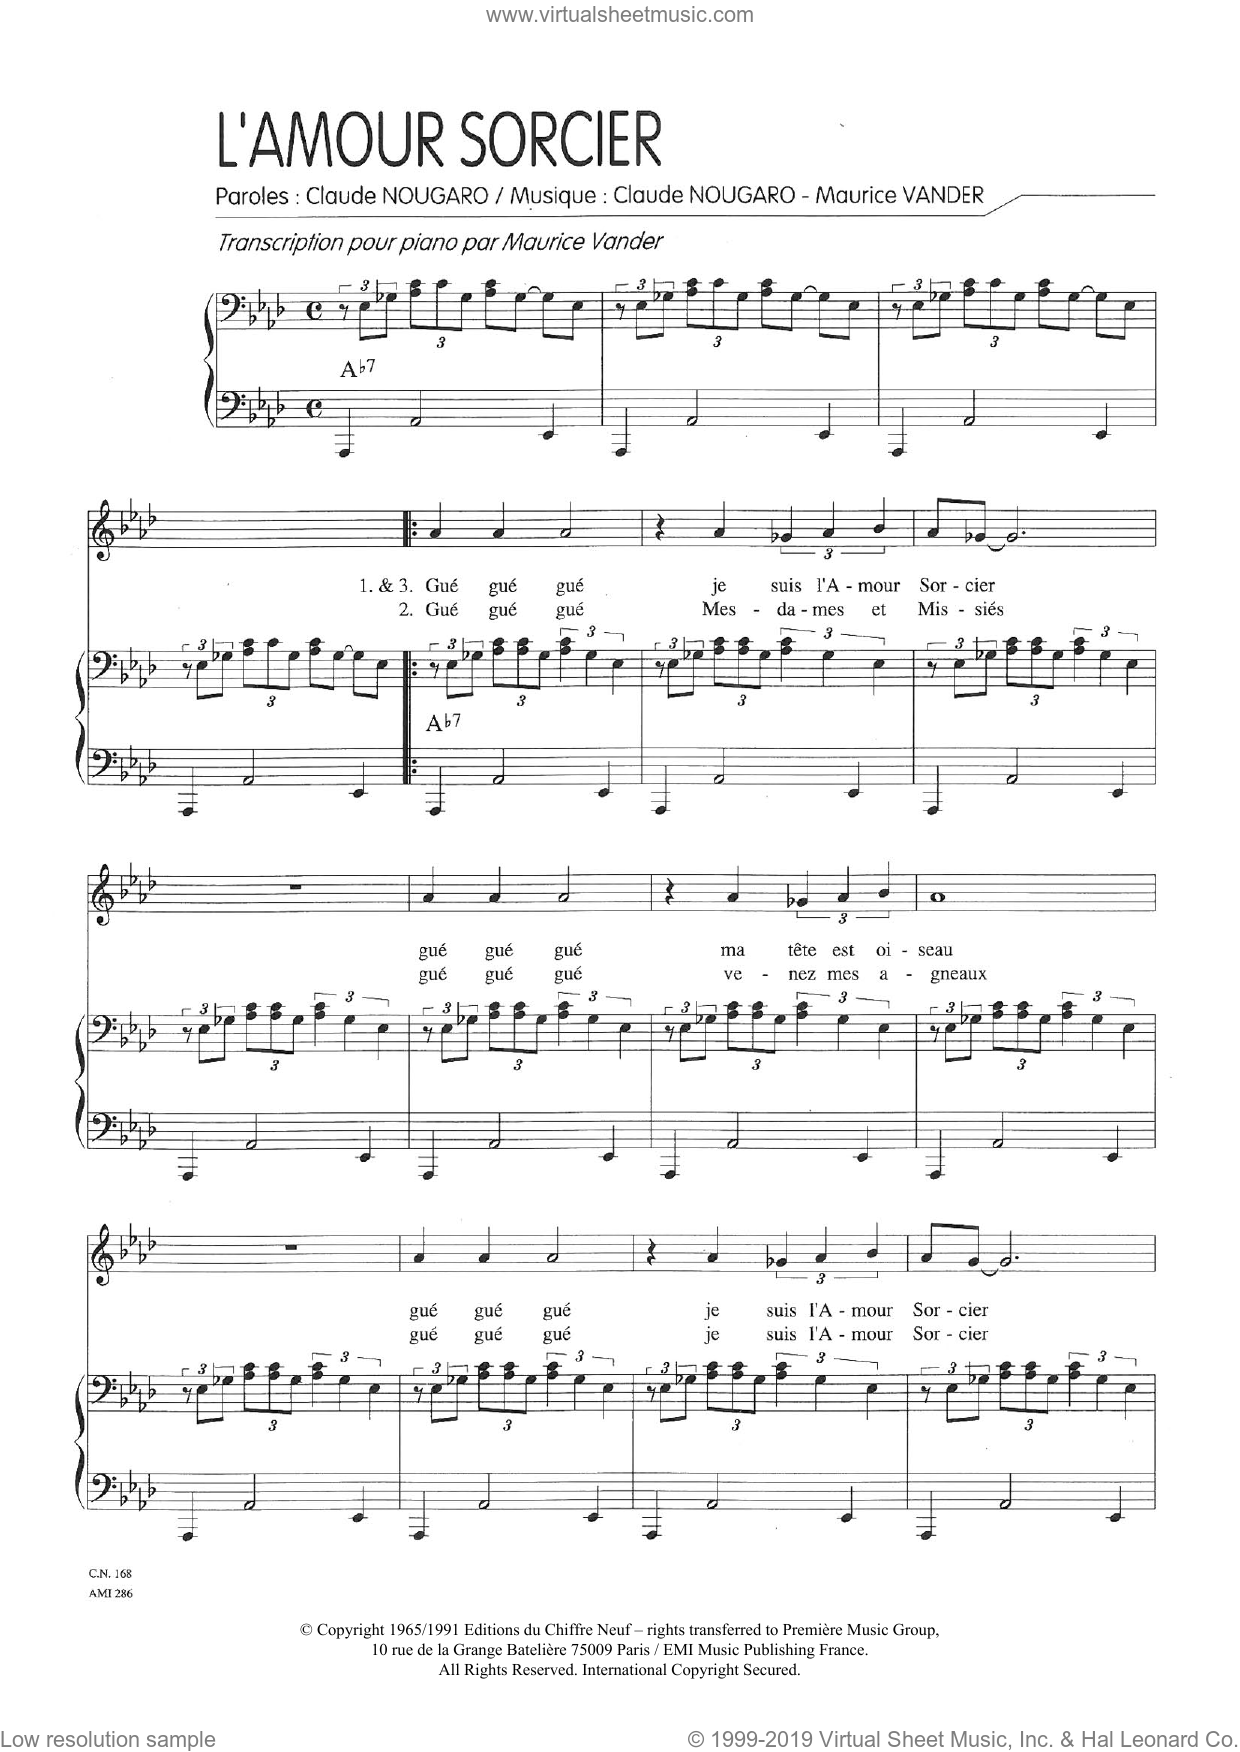 Amour Sorcier sheet music for voice and piano by Claude Nougaro and Maurice Vanderschueren, intermediate skill level